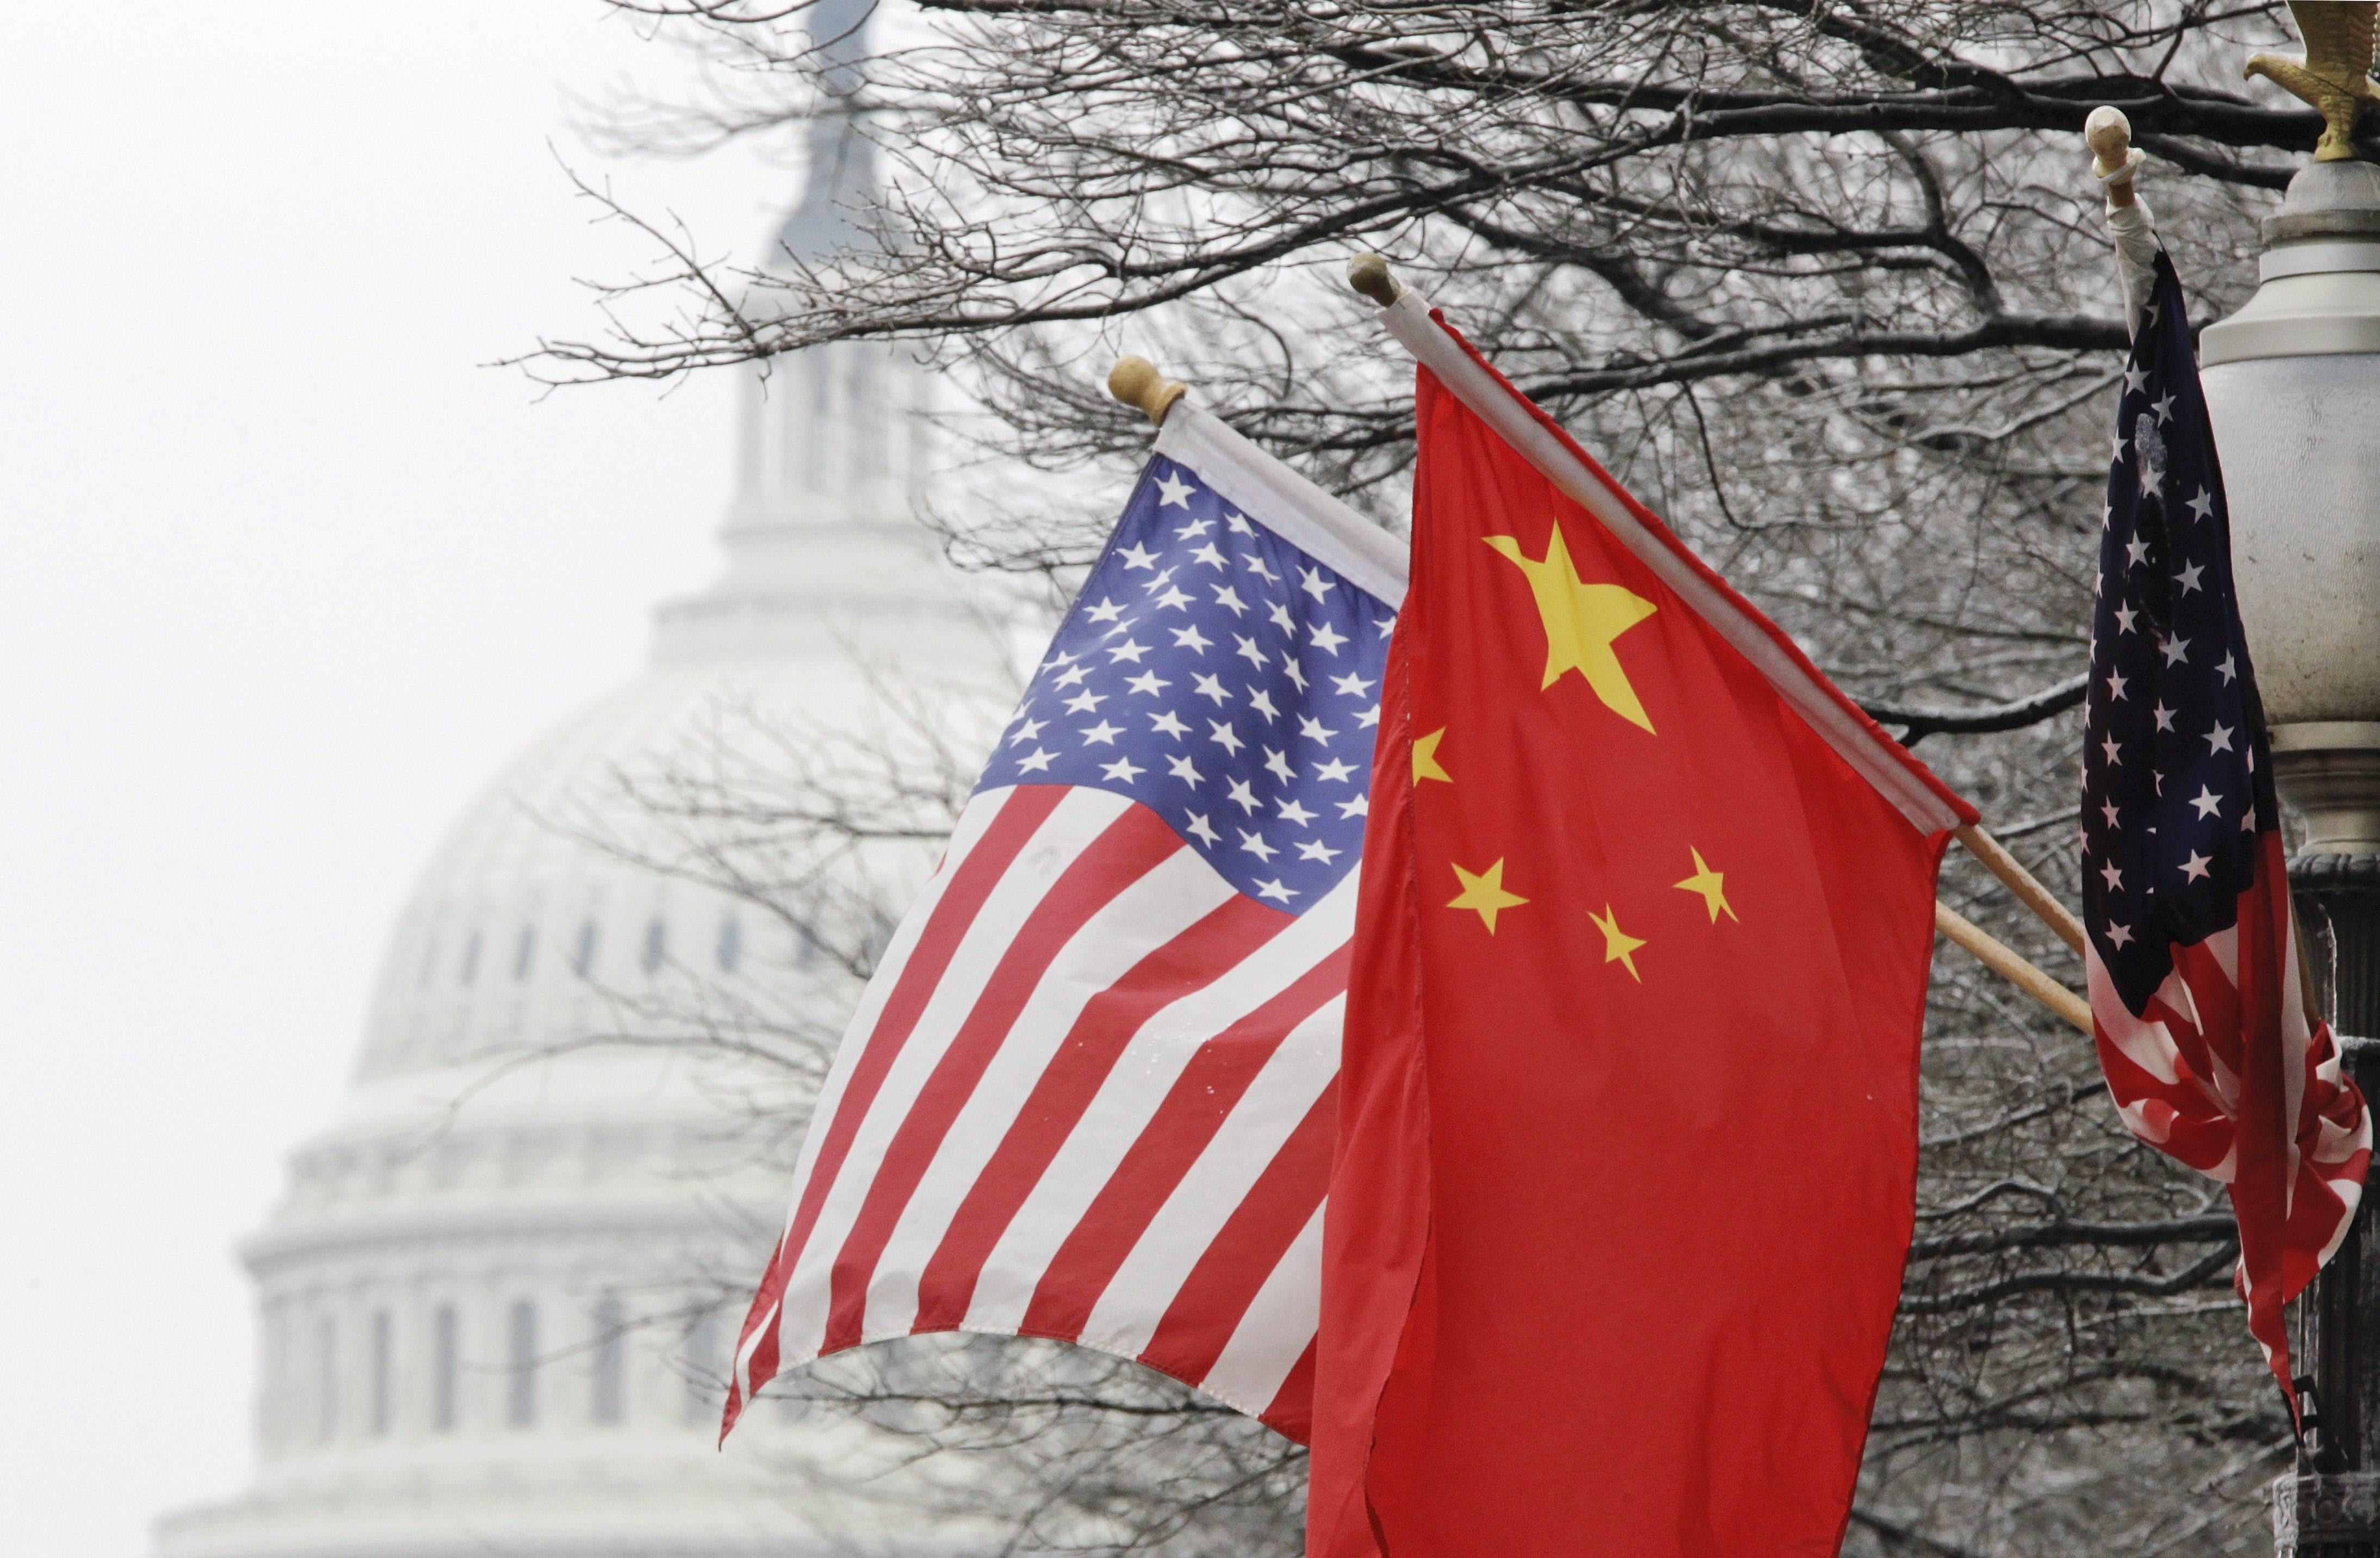 The Capitol dome is seen at rear as Chinese and U.S. flags are displayed in Washington, Tuesday, Jan. 18, 2011, ahead of the arrival of China's President Hu Jintao for a state visit hosted by President Barack Obama. (AP Photo/Charles Dharapak)